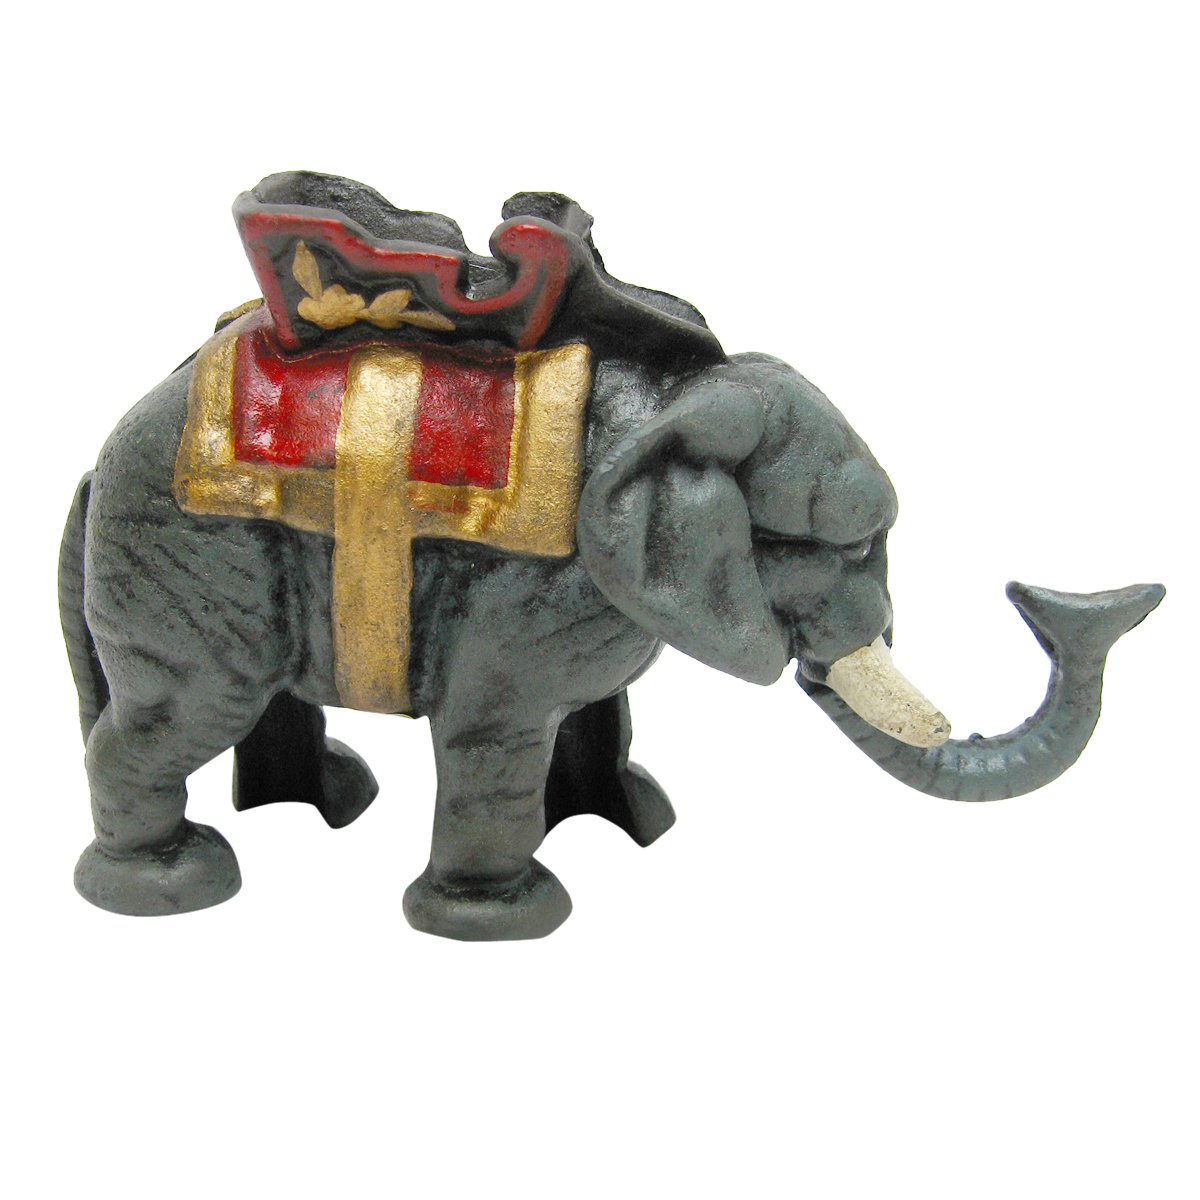 Design Toscano Circus Elephant Collectors' Die Cast Iron Mechanical Coin Bank by Design Toscano (Image #1)